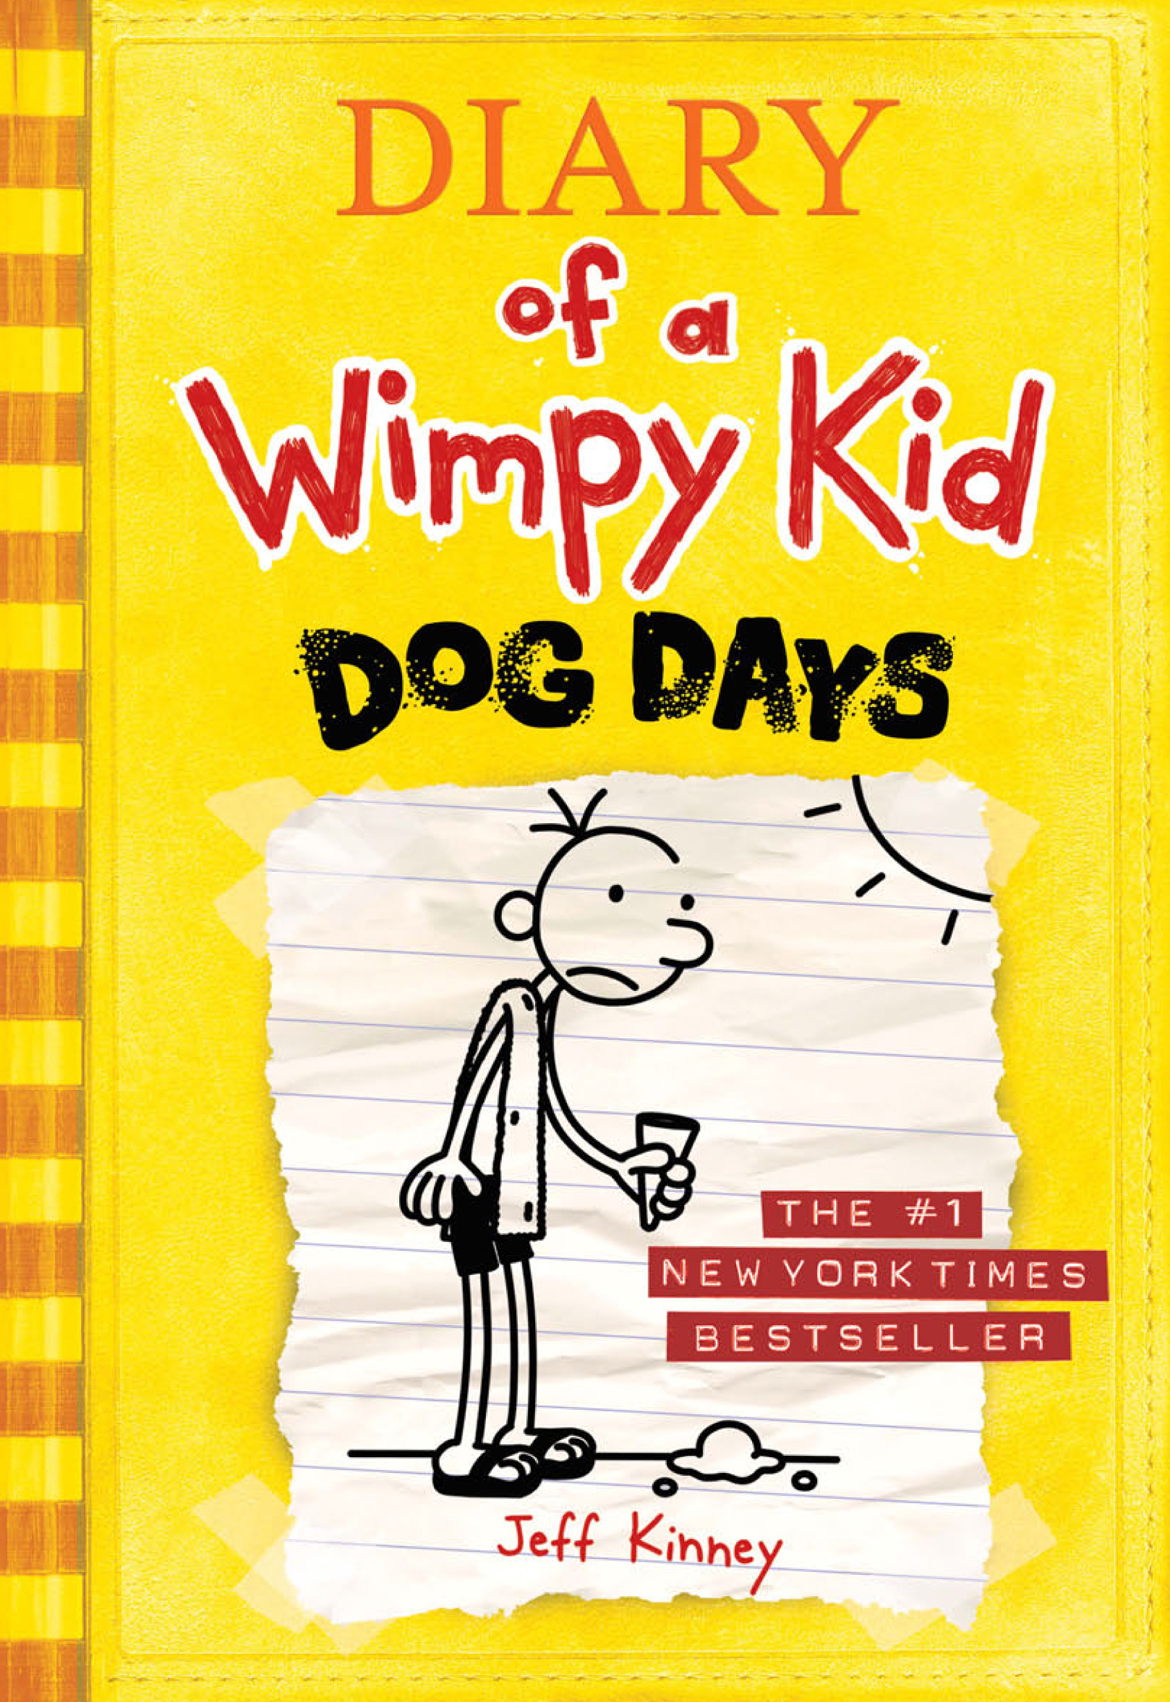 Cover Image of Dog Days (Diary of a Wimpy Kid #4)